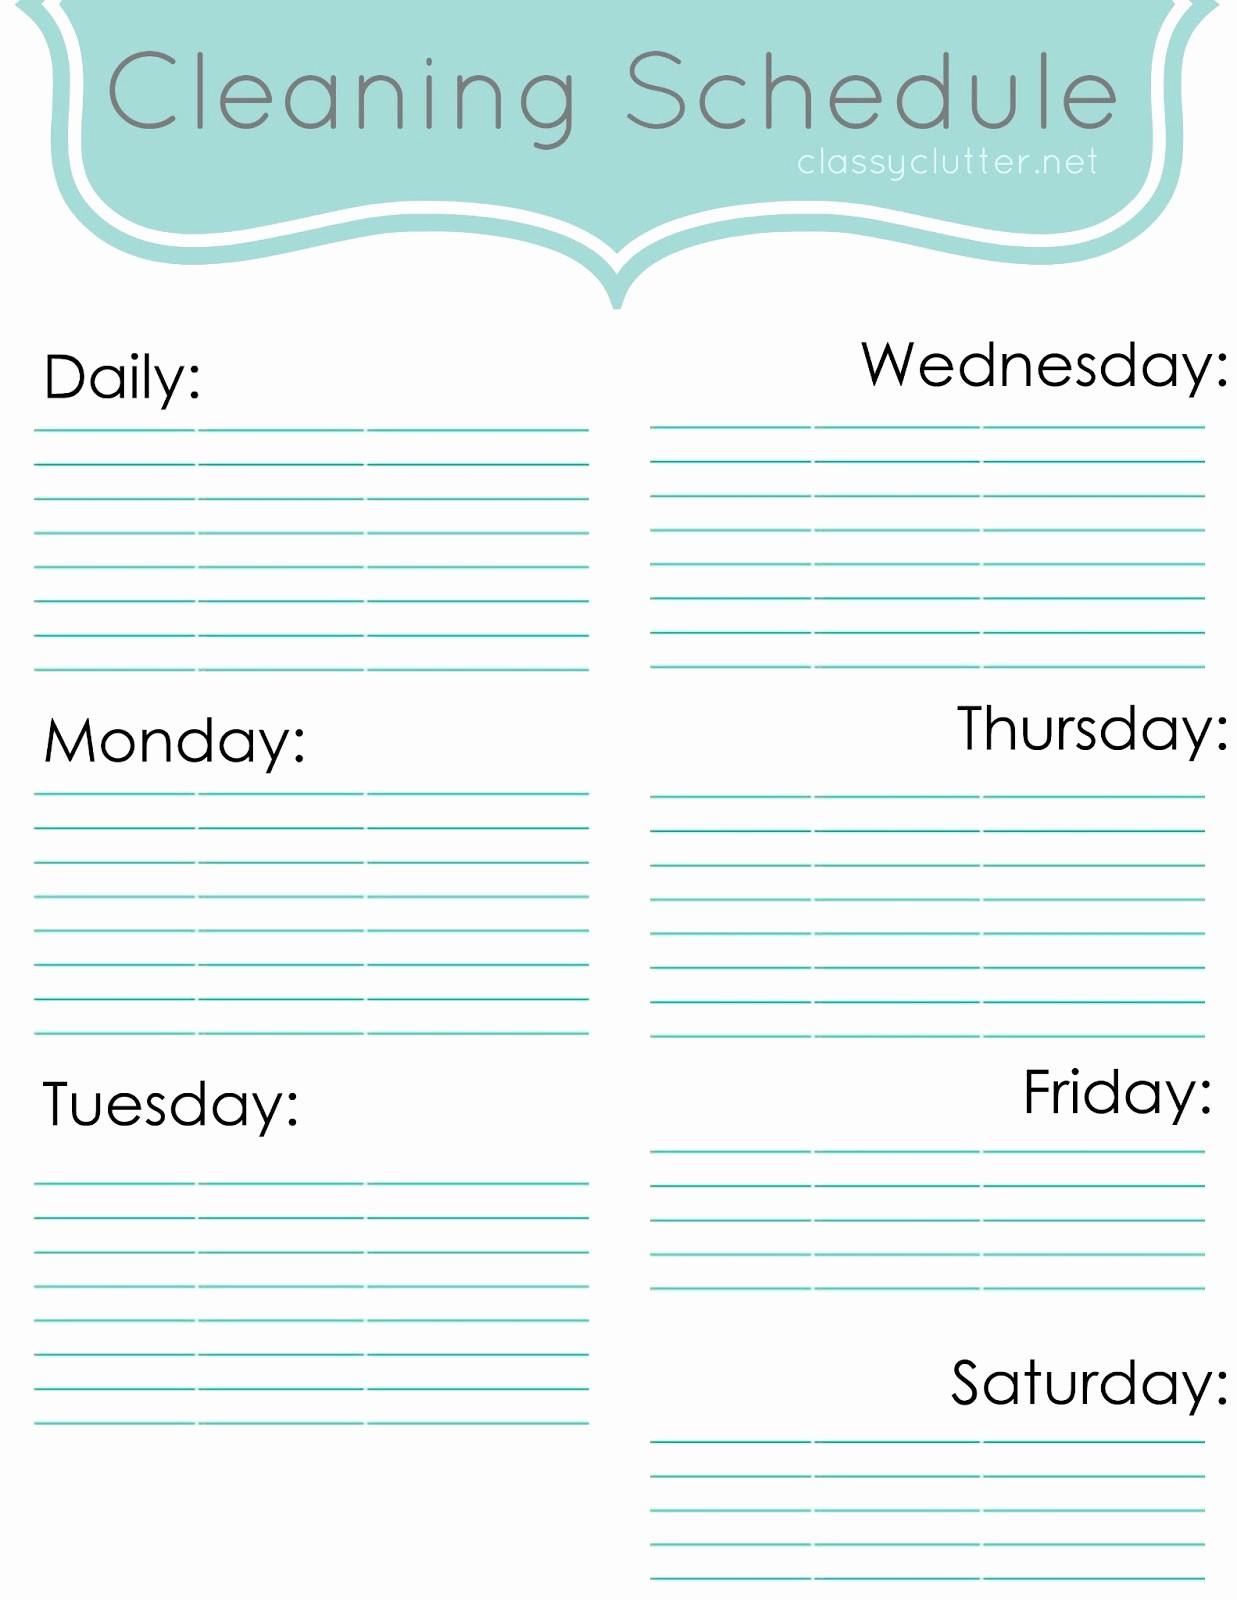 Monthly House Cleaning Schedule Template Best Of Weekly Cleaning Schedule Improve Your Cleaning Habits